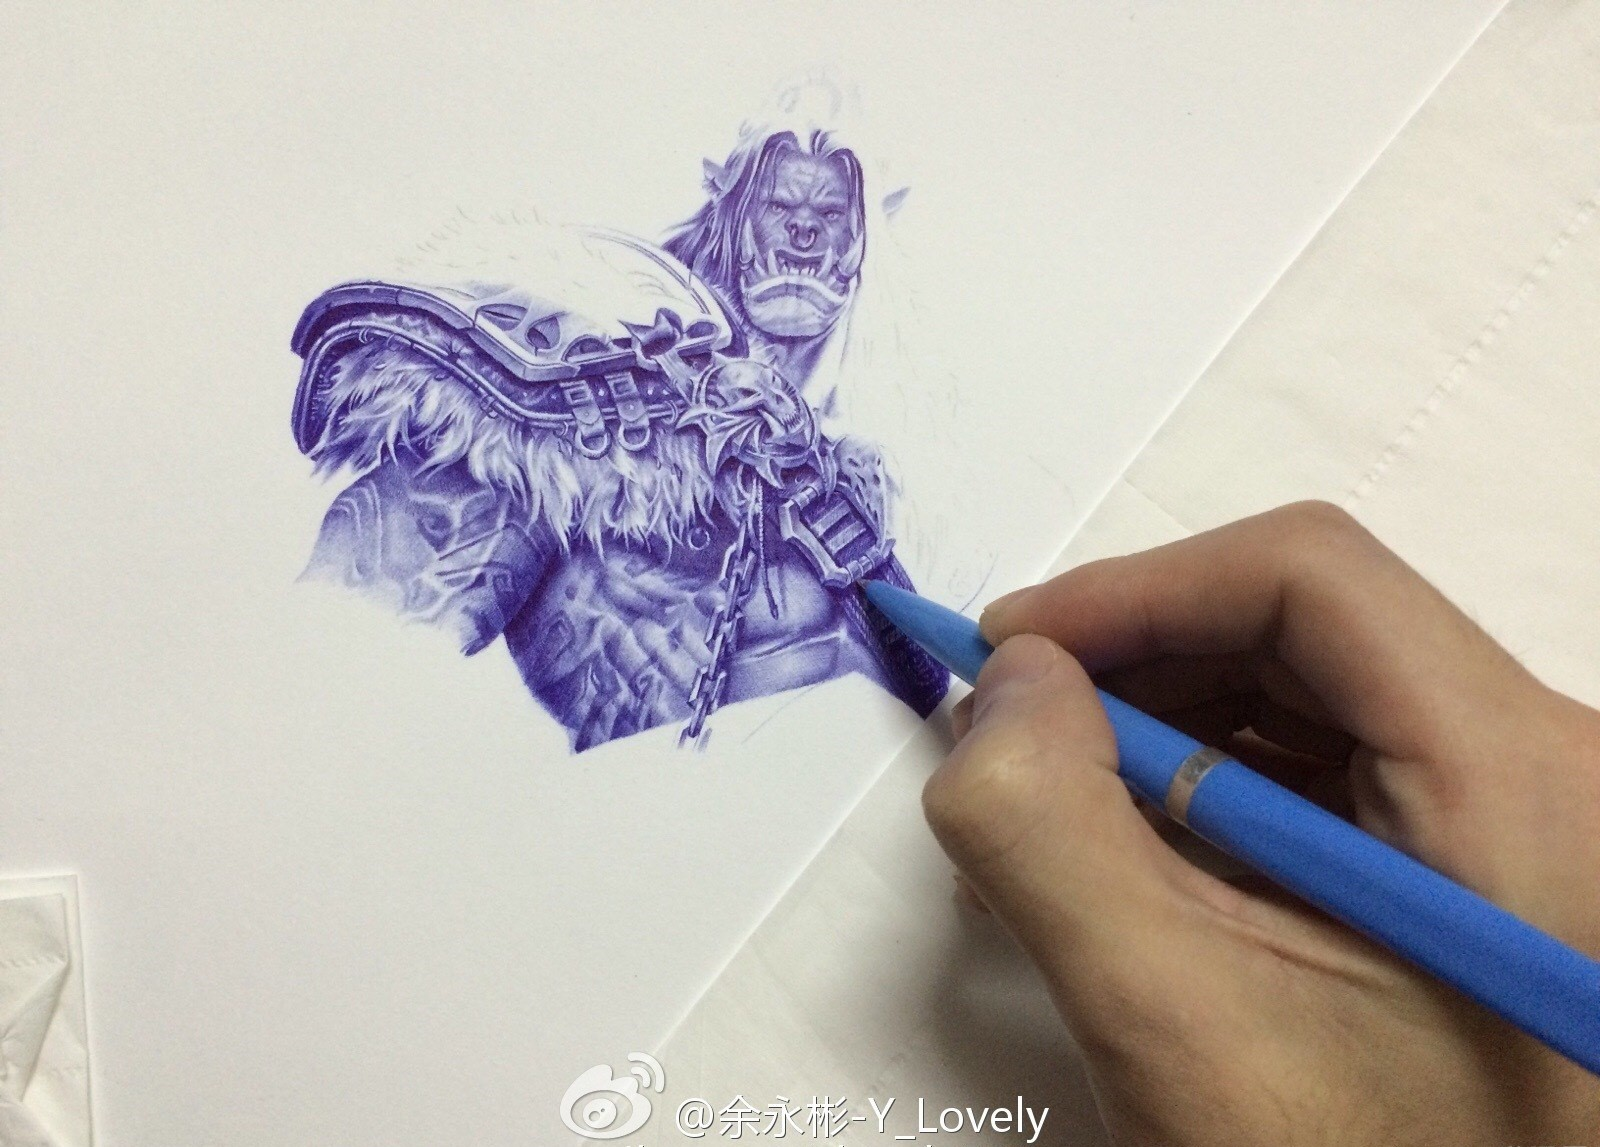 Drawn 3d art epic The by whole Ballpoint were